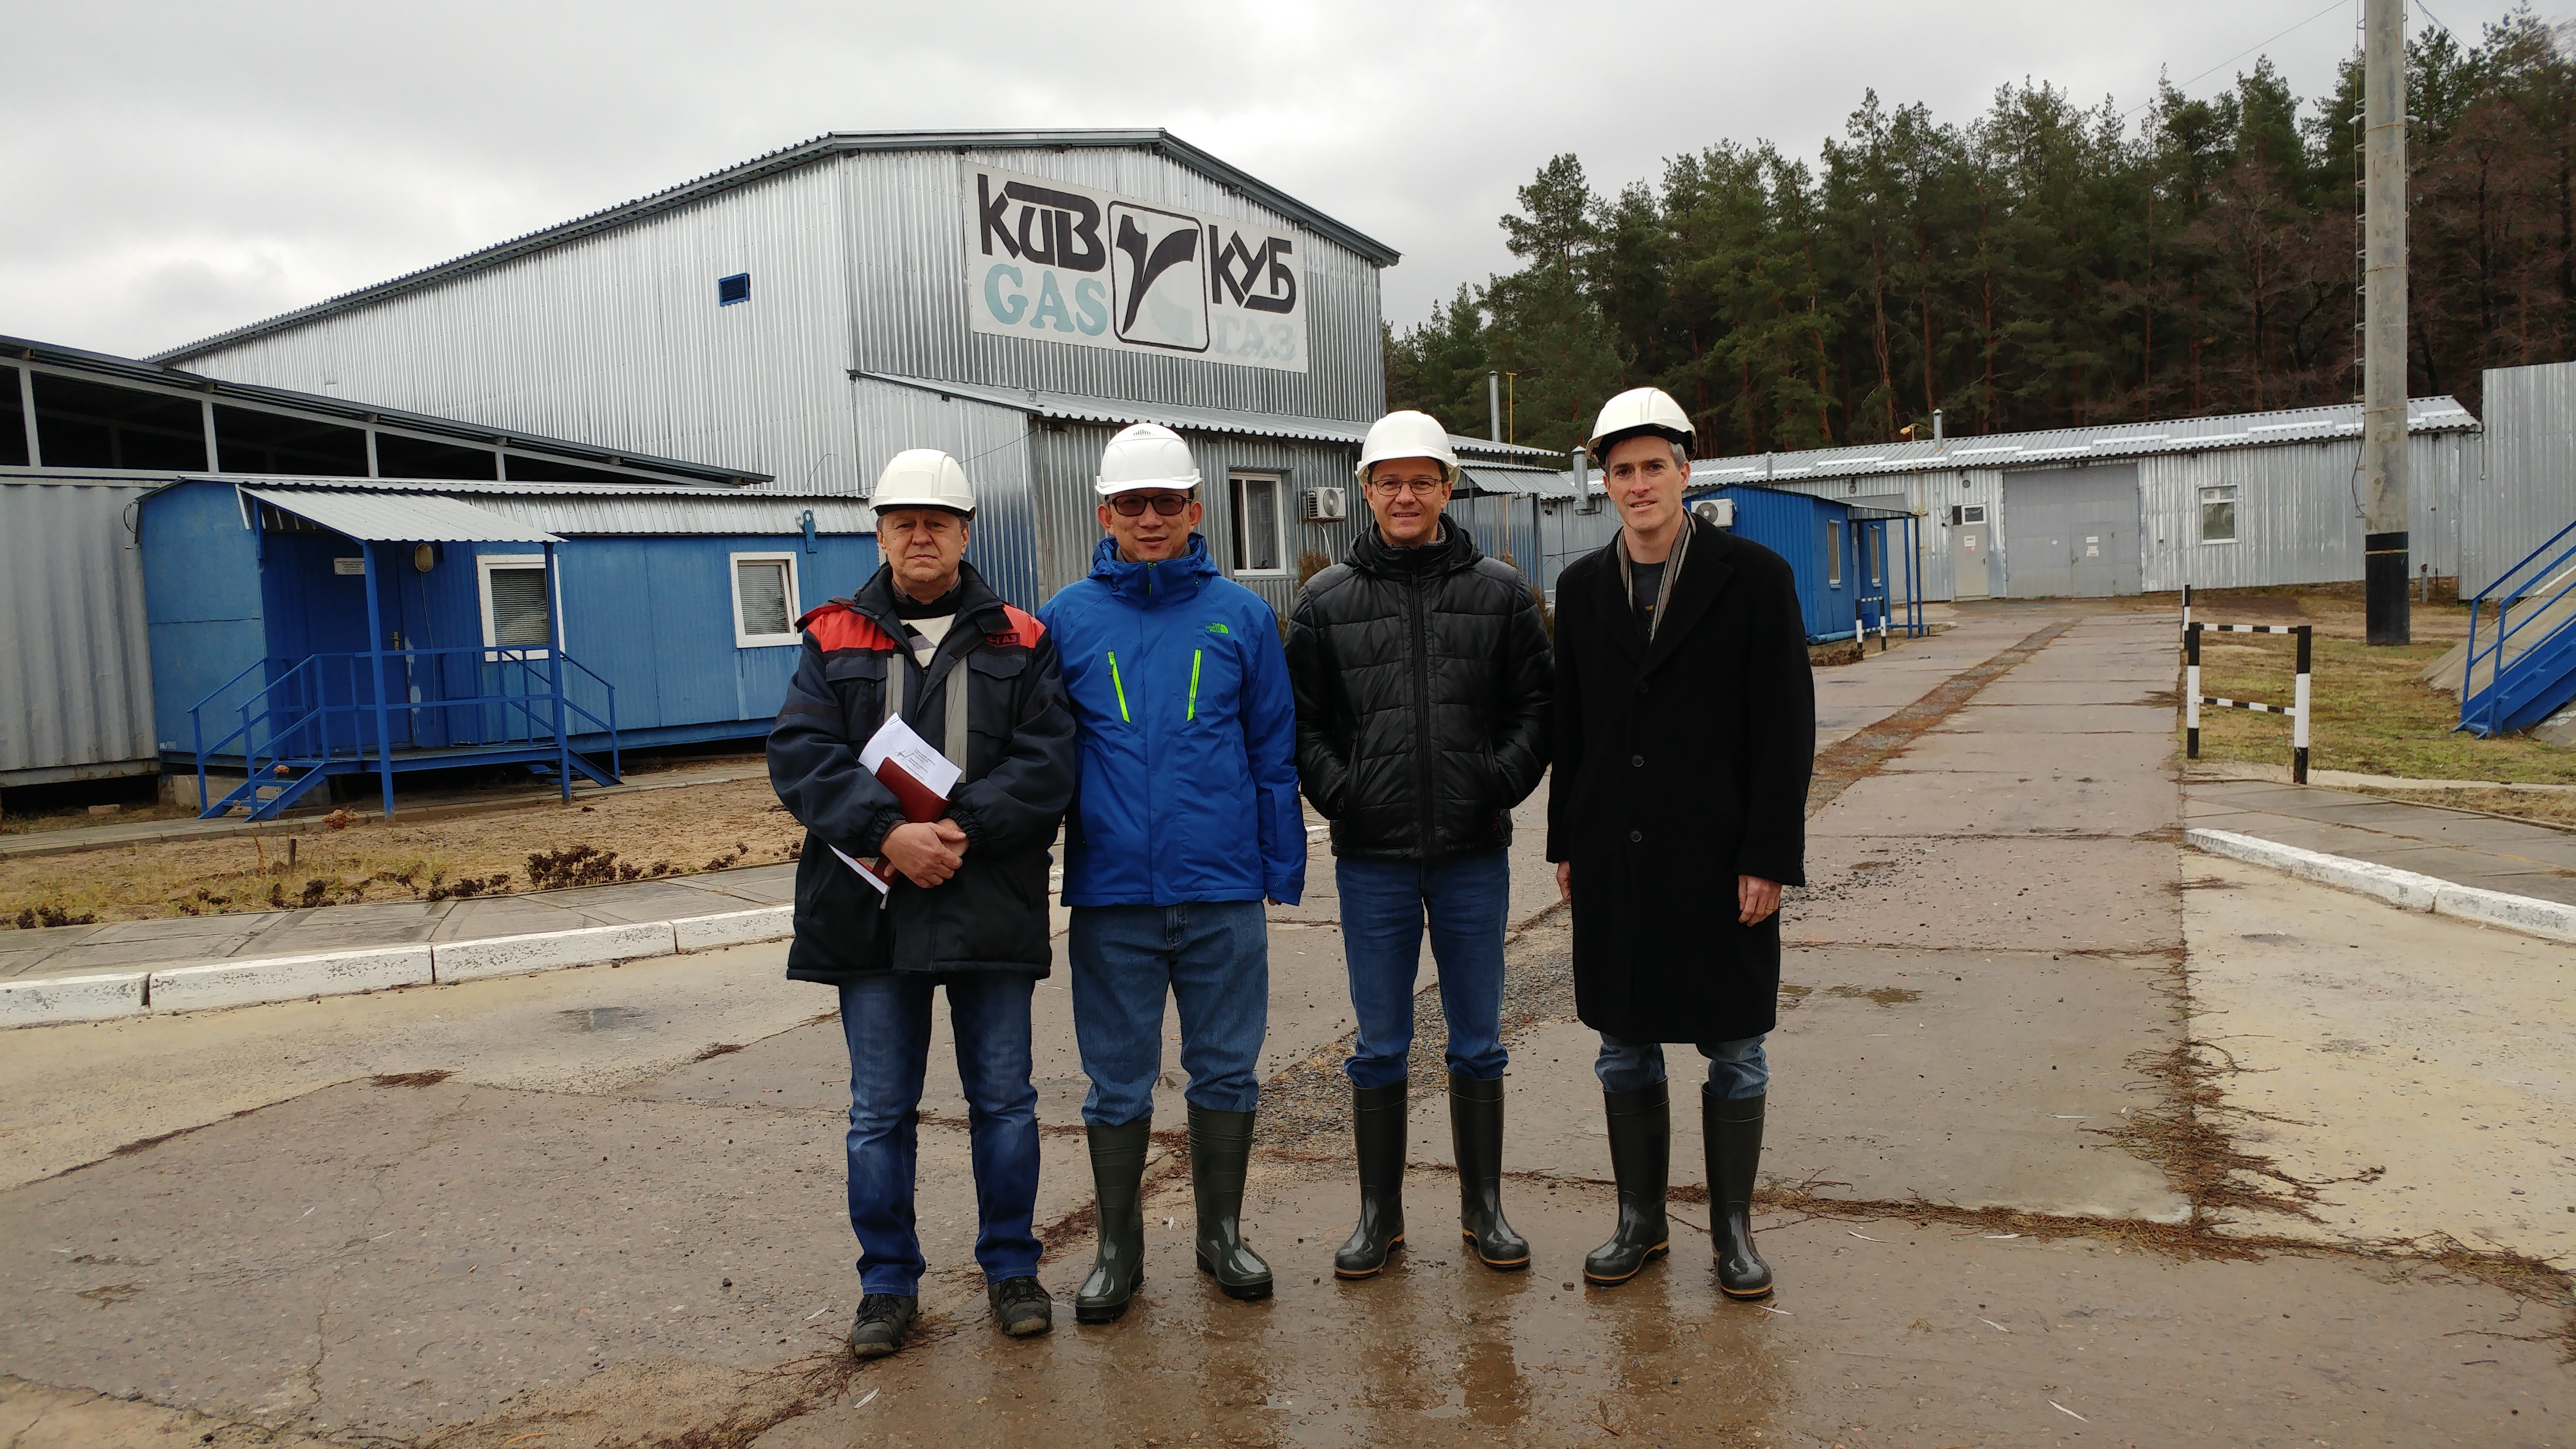 Group picture in front of the gas plant